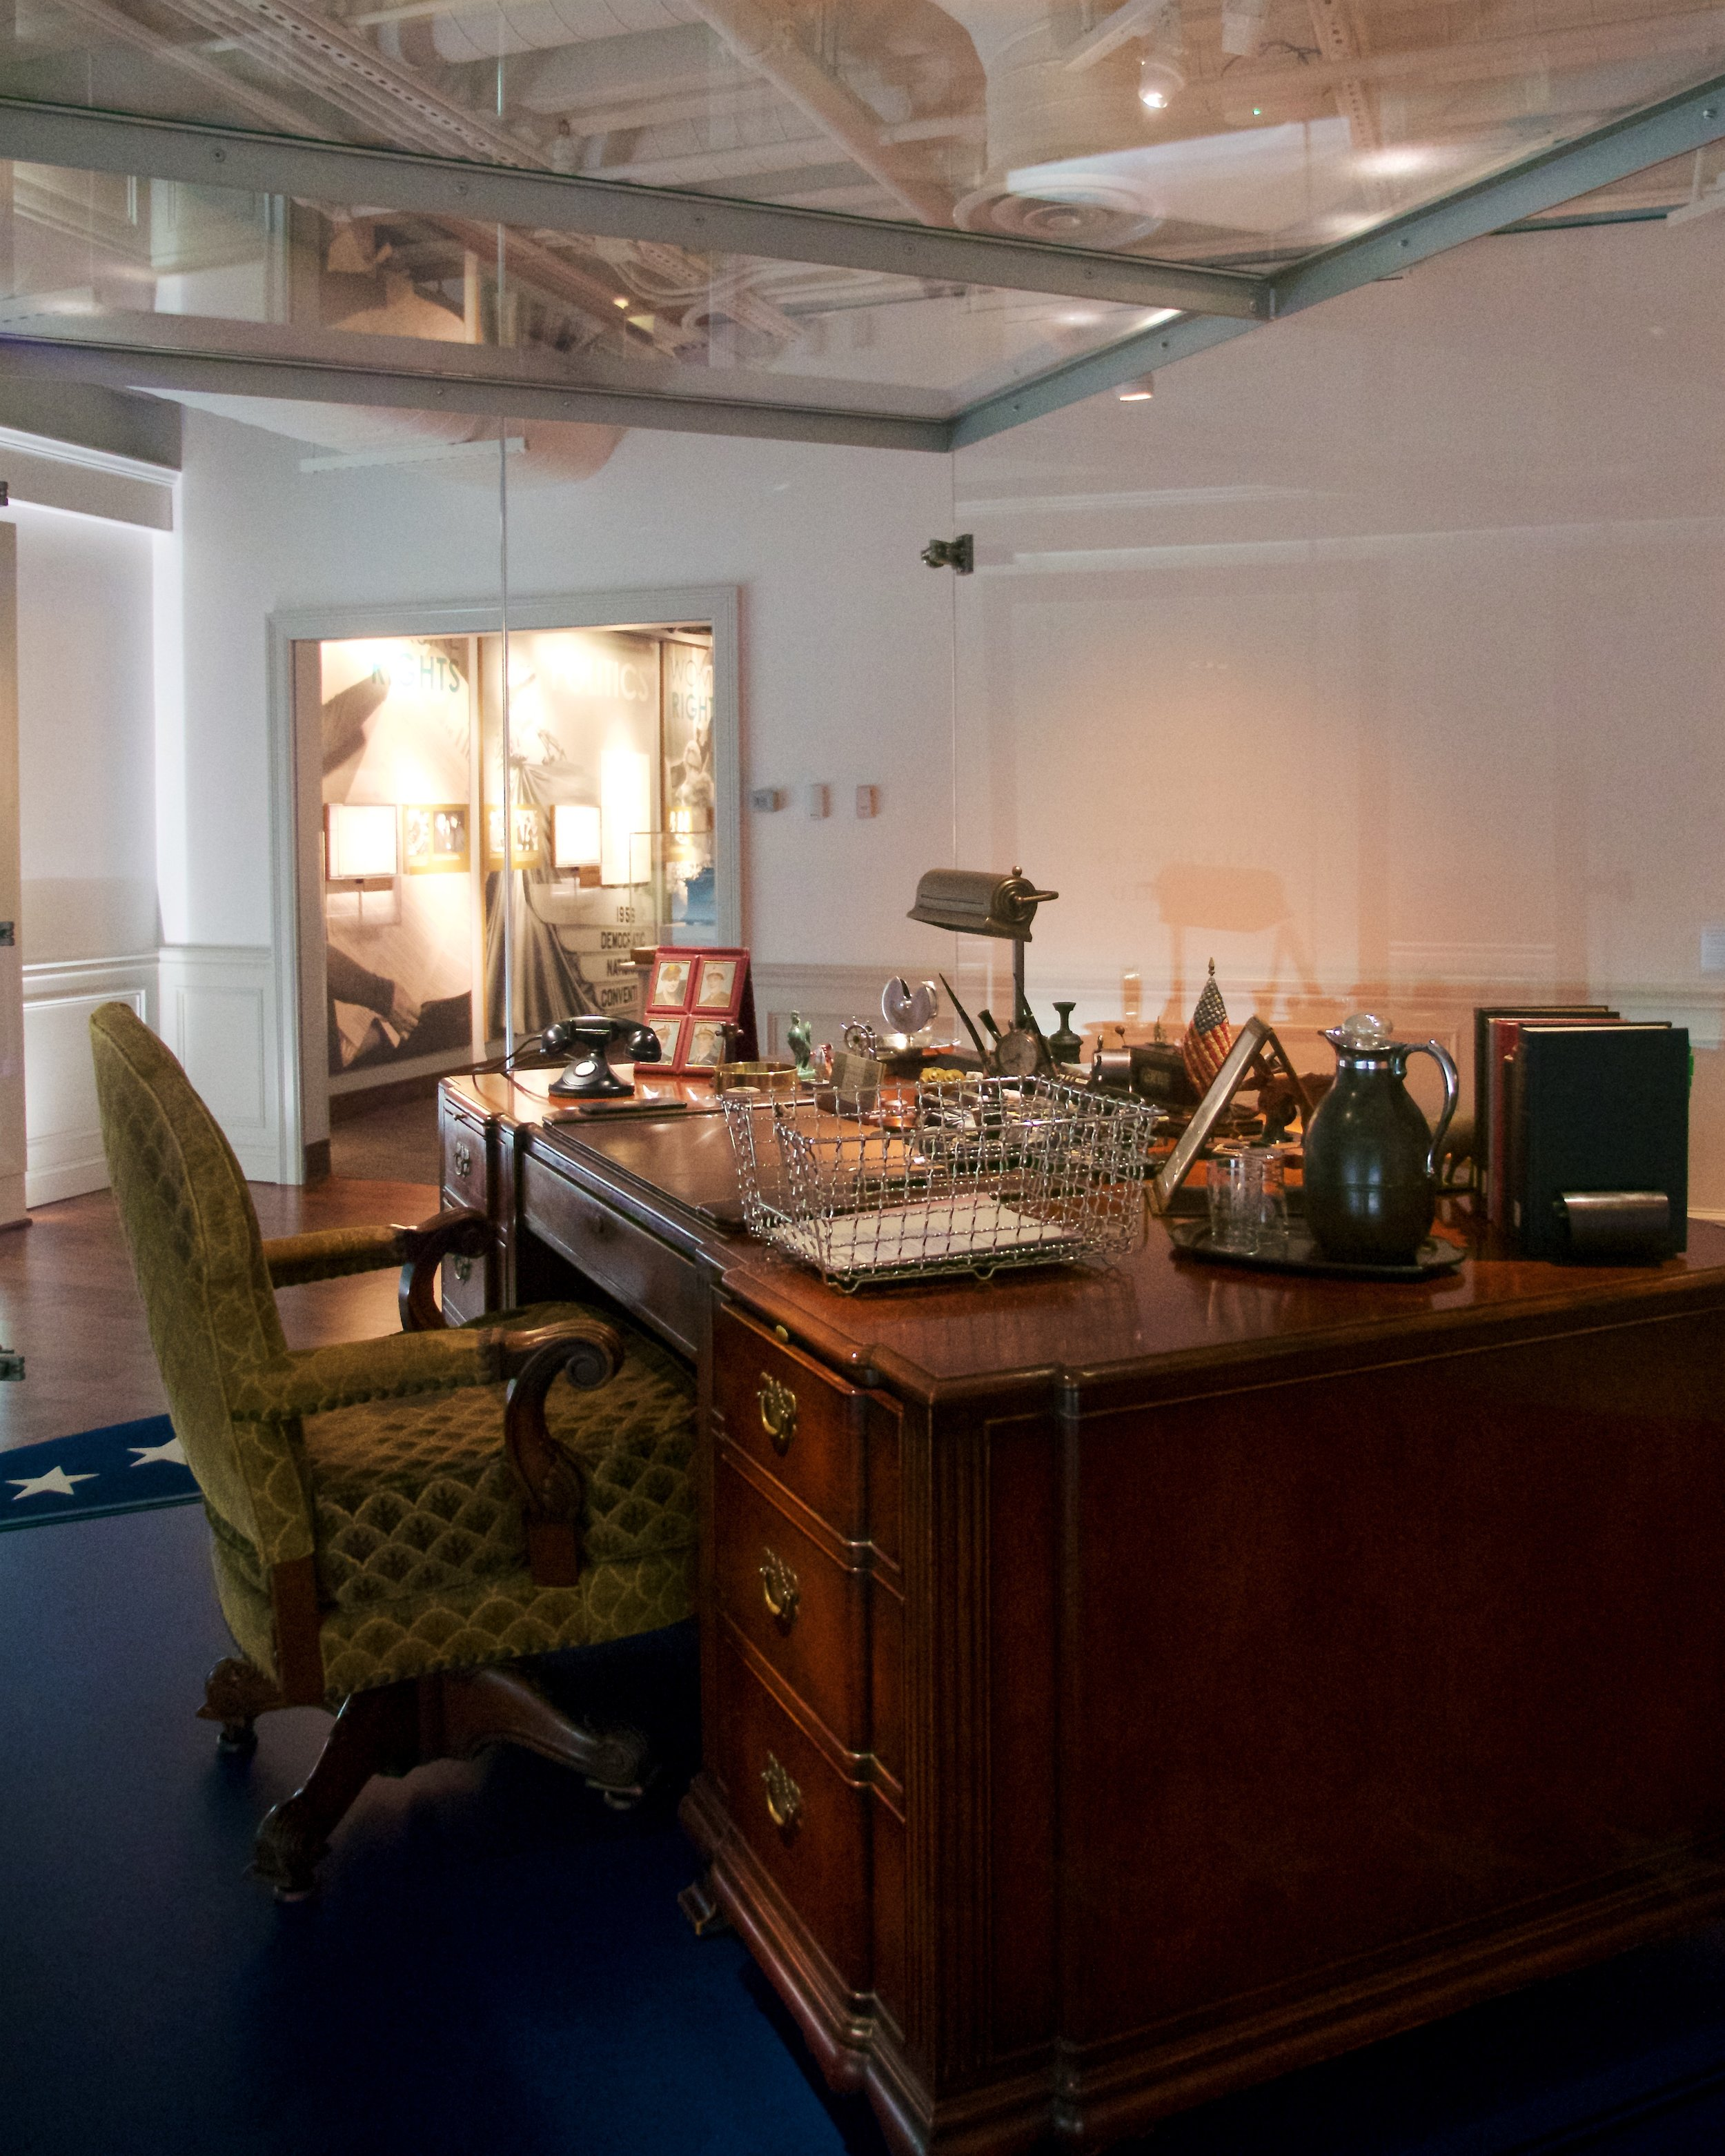 FDR's Oval Office desk